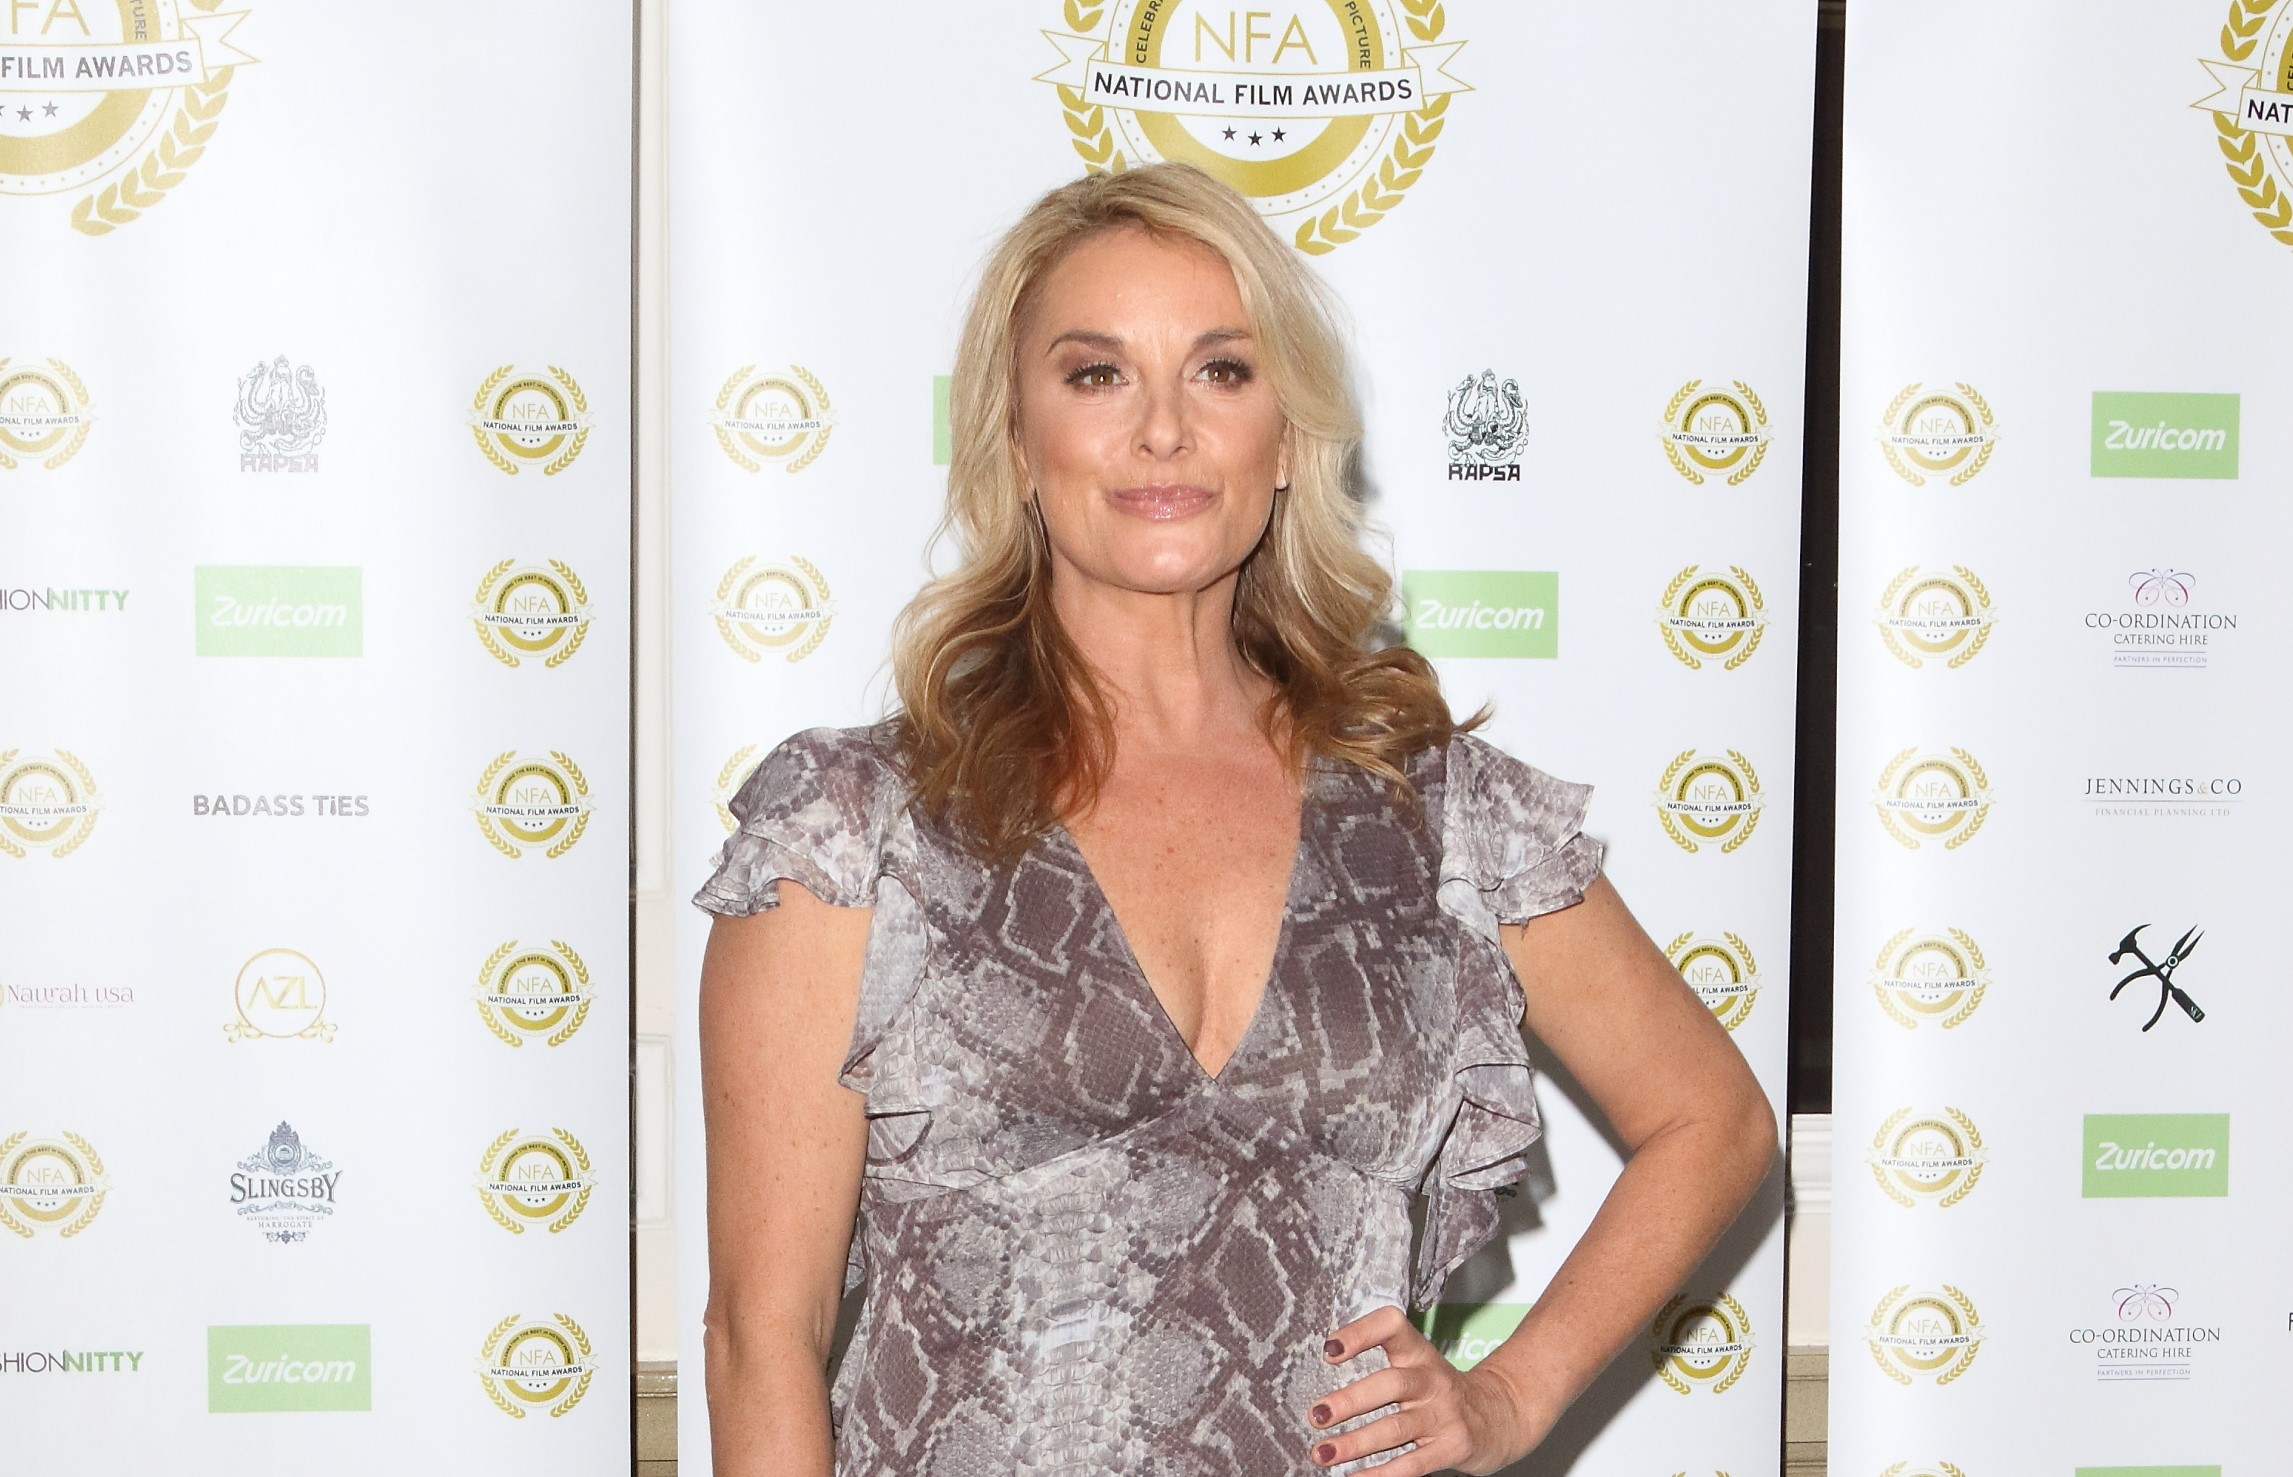 EastEnders star Tamzin Outhwaite shares adorable snap of daughters and boyfriend Tom Child